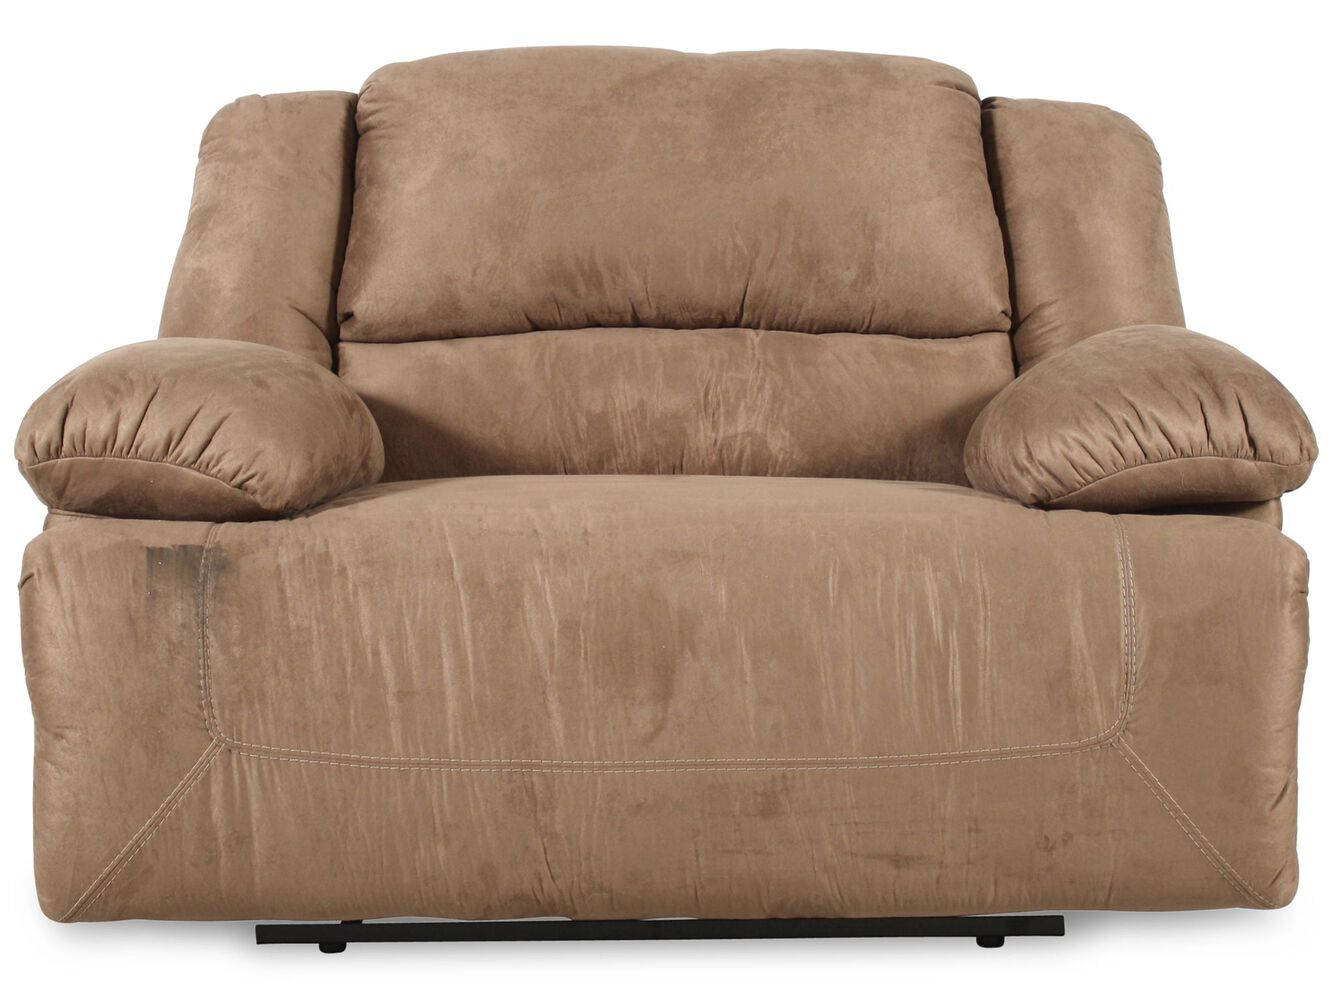 low leg retro width height trim american threshold recliner products recliners item furniture accent